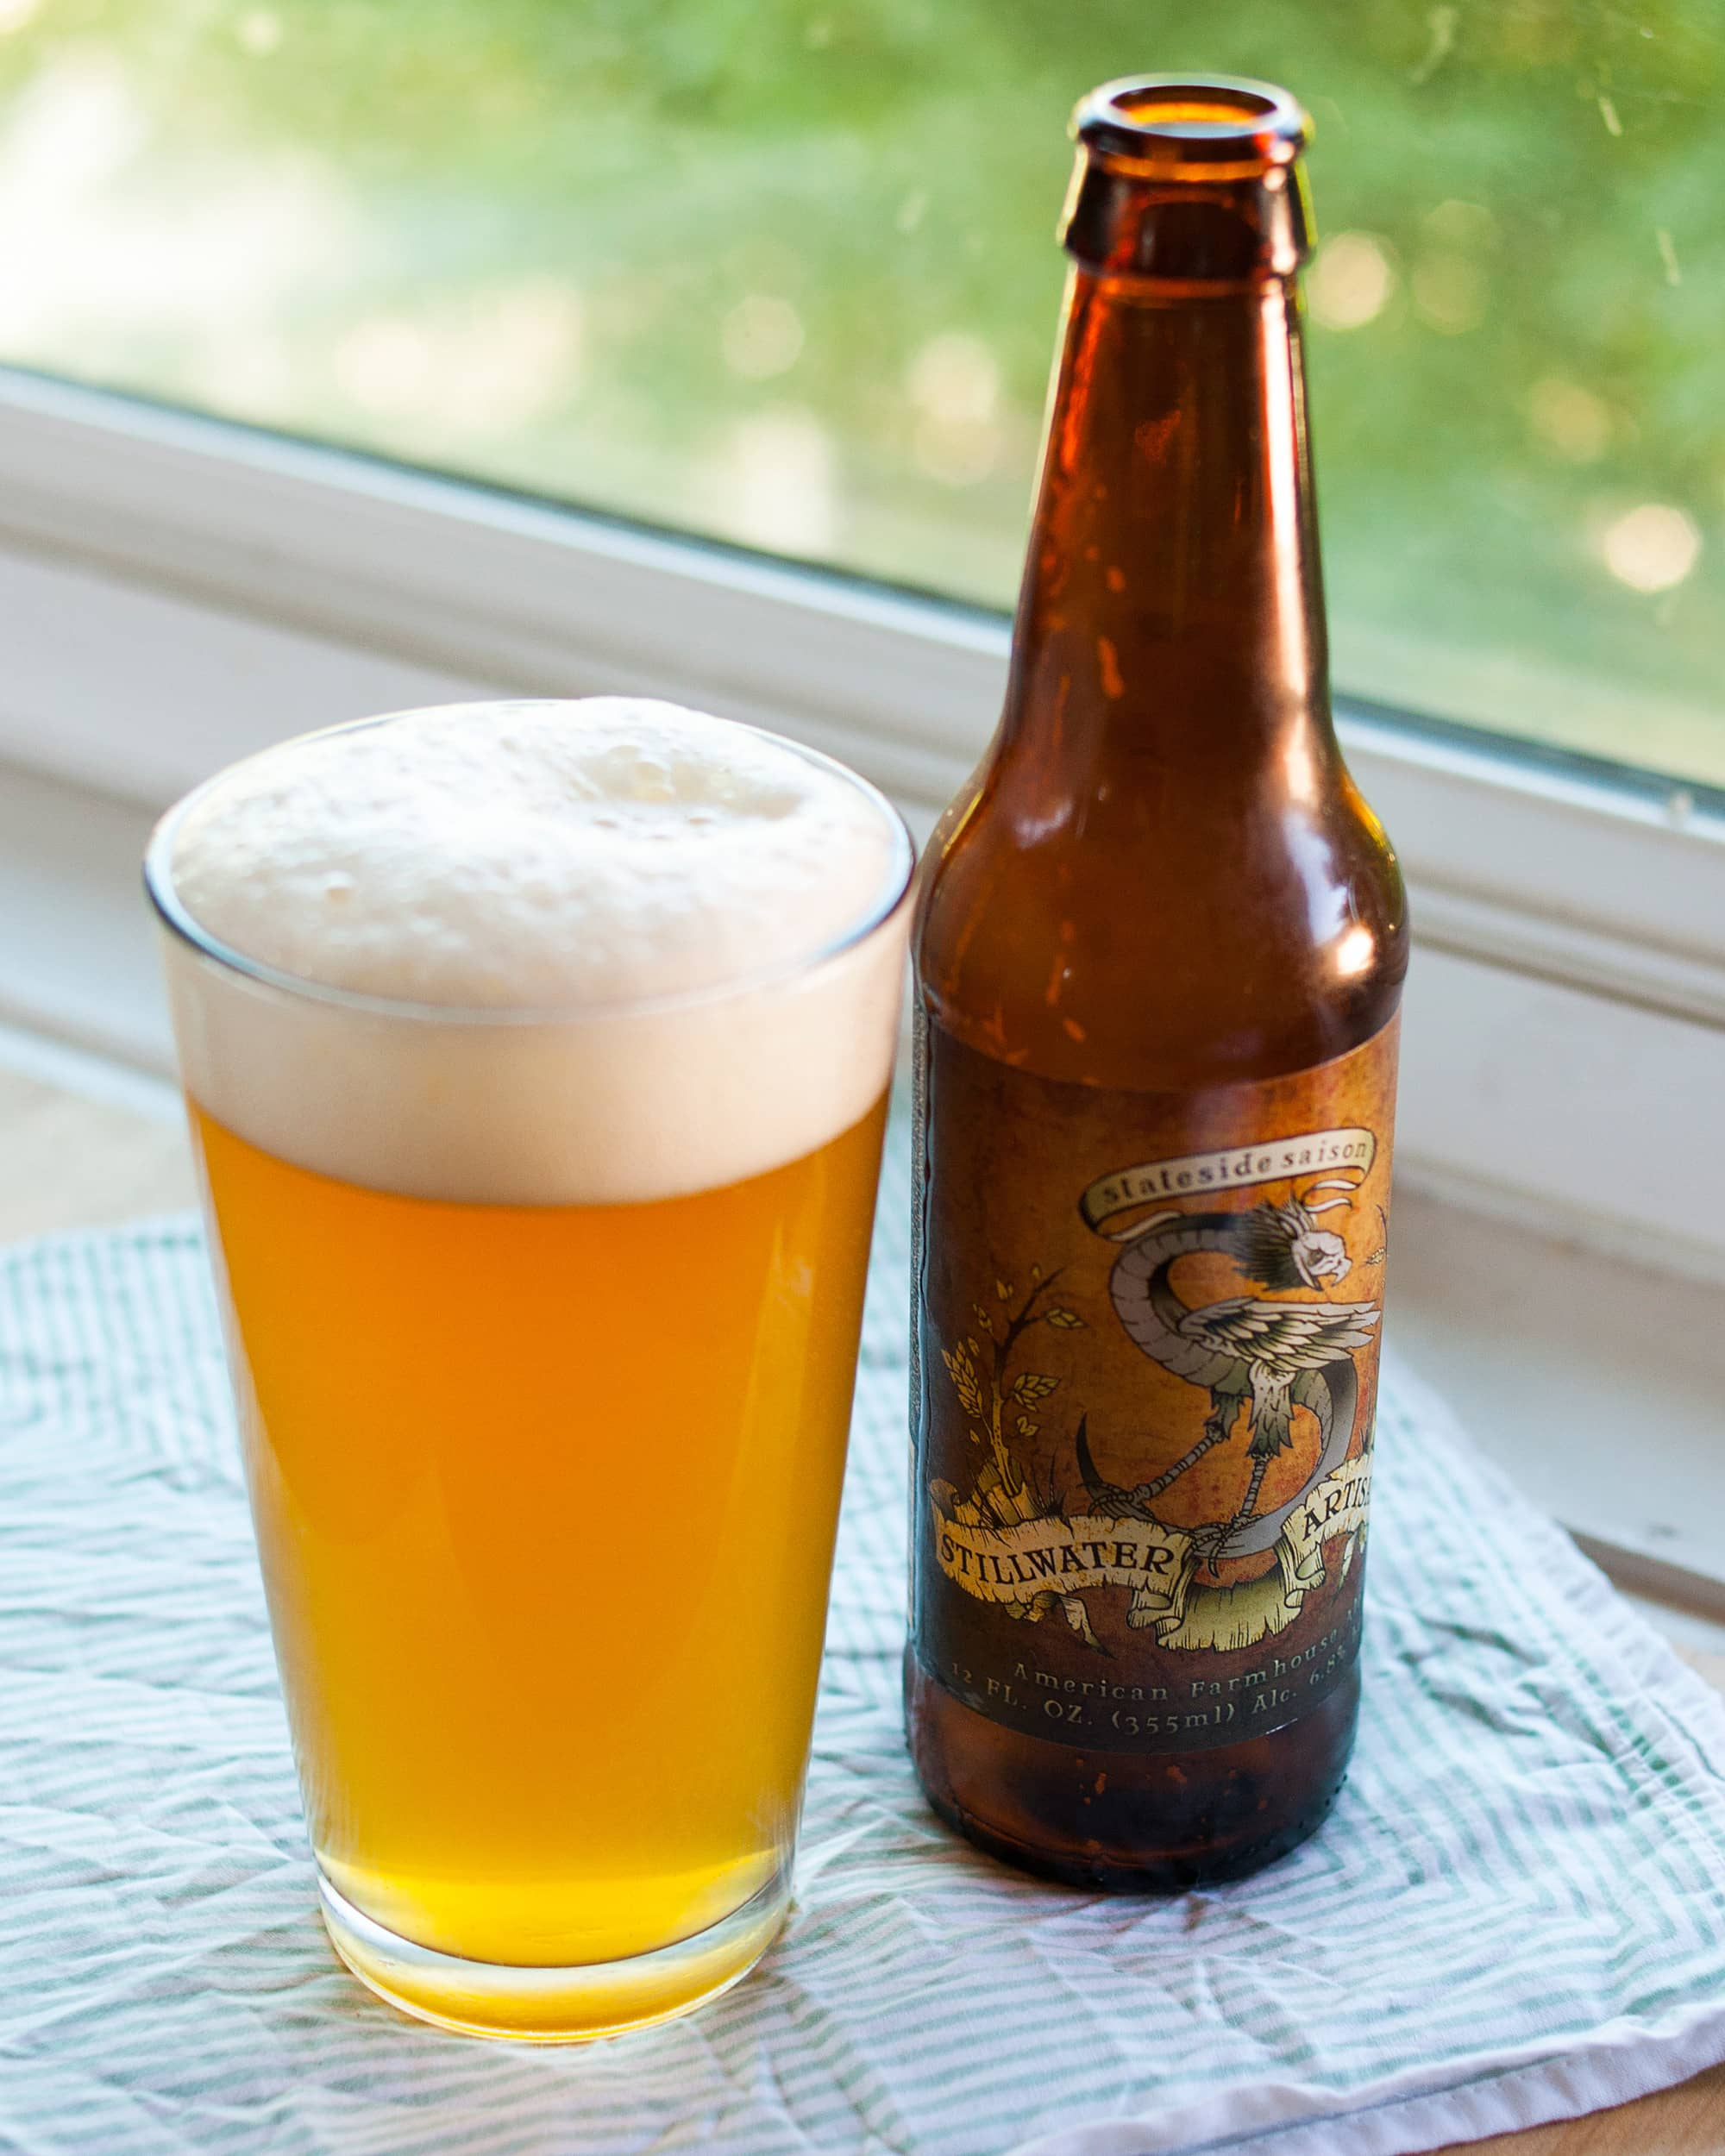 Beer Review: Stateside Saison from Stillwater Artisanal Ales